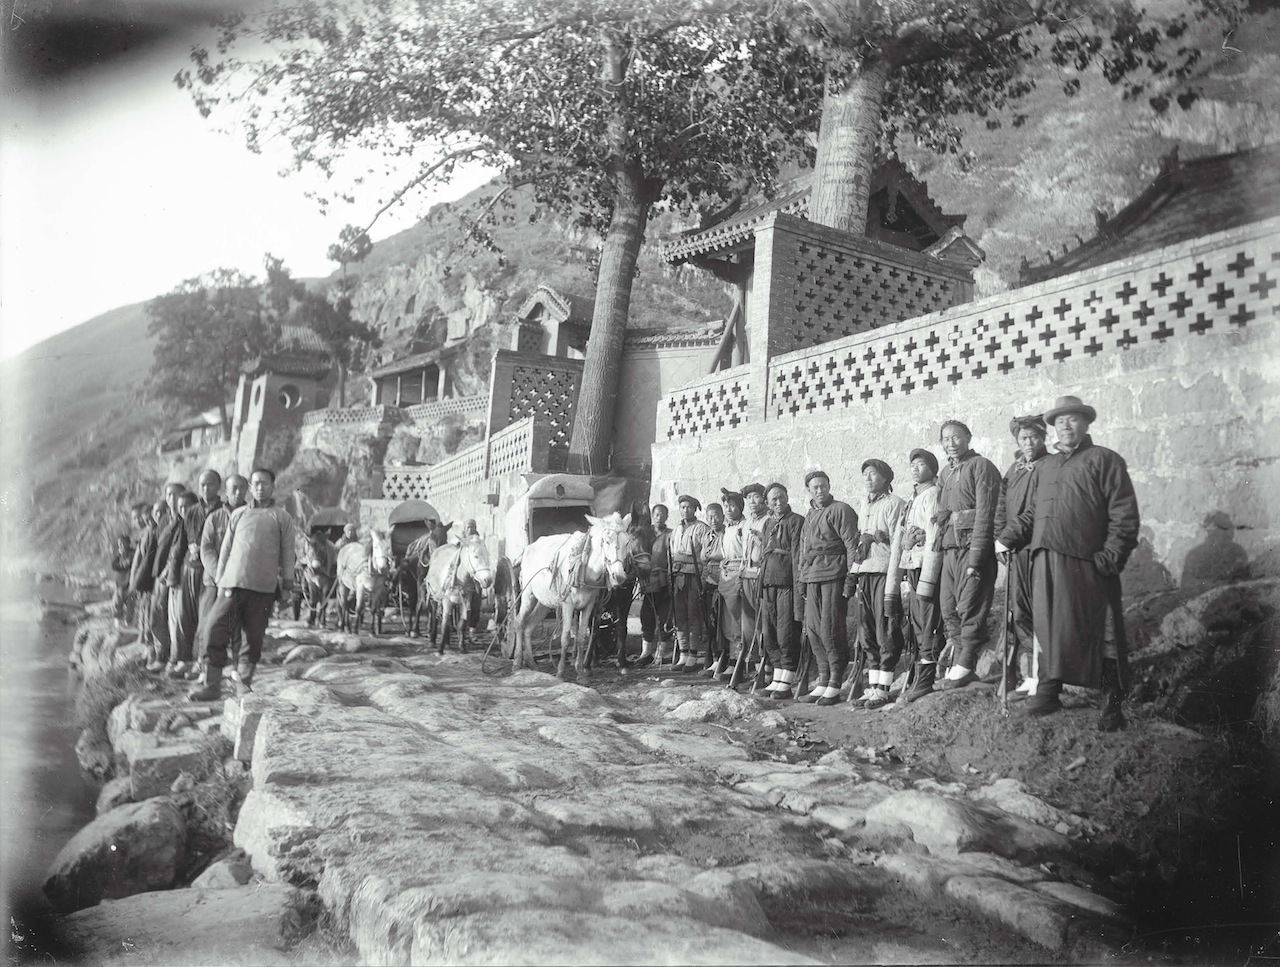 Longmen, Freer's Chinese assistants along the riverbank, November  12, 1910  Yütai (active early 20th century)  Silver gelatin photographic print; H x W: 15.6 x 20.7 cm  Charles L. Freer Papers, Freer Gallery of Art and the Arthur M. Sackler  Gallery Archives, FSA A.1 12.5.GN.088